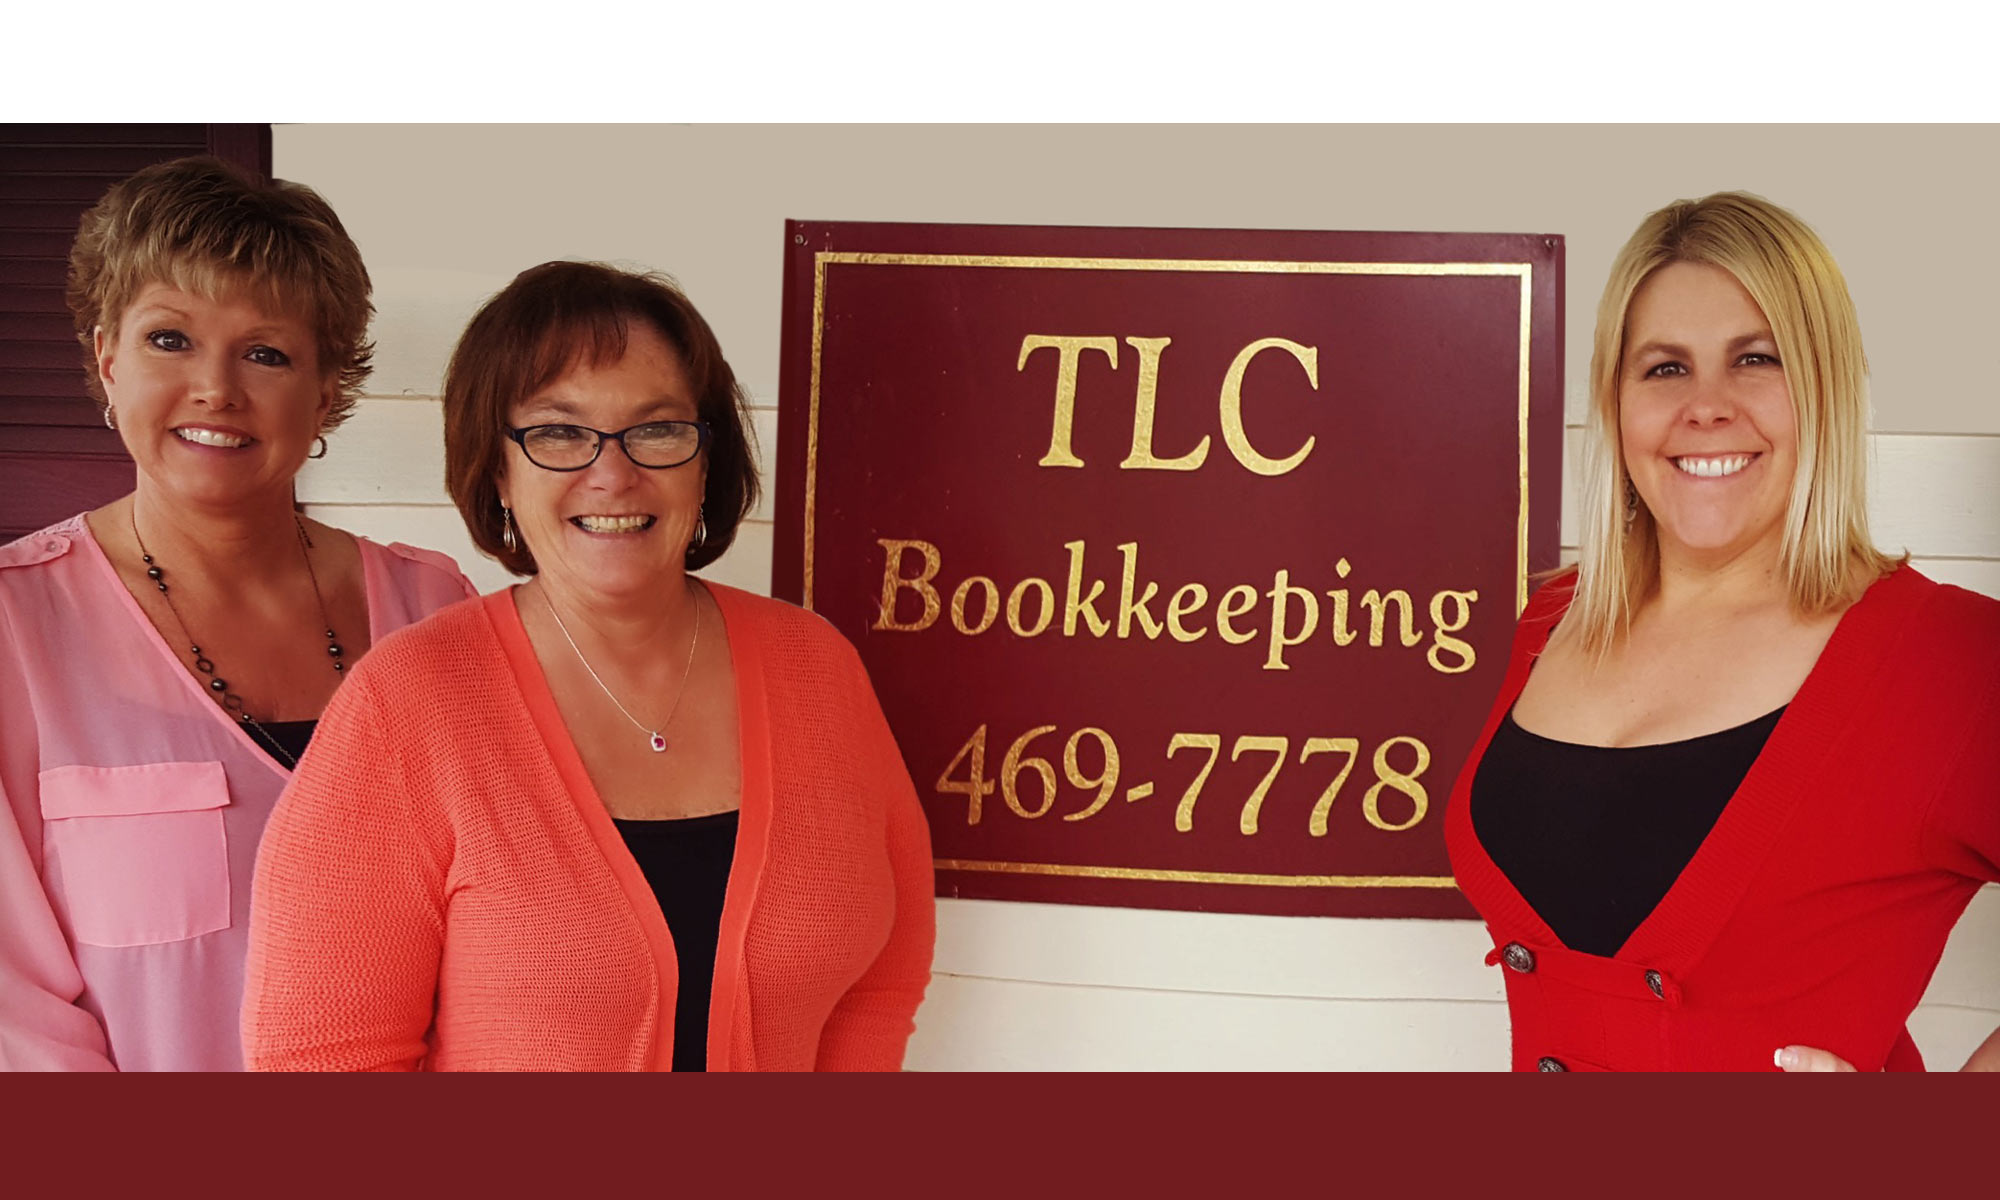 TLC Bookkeeping